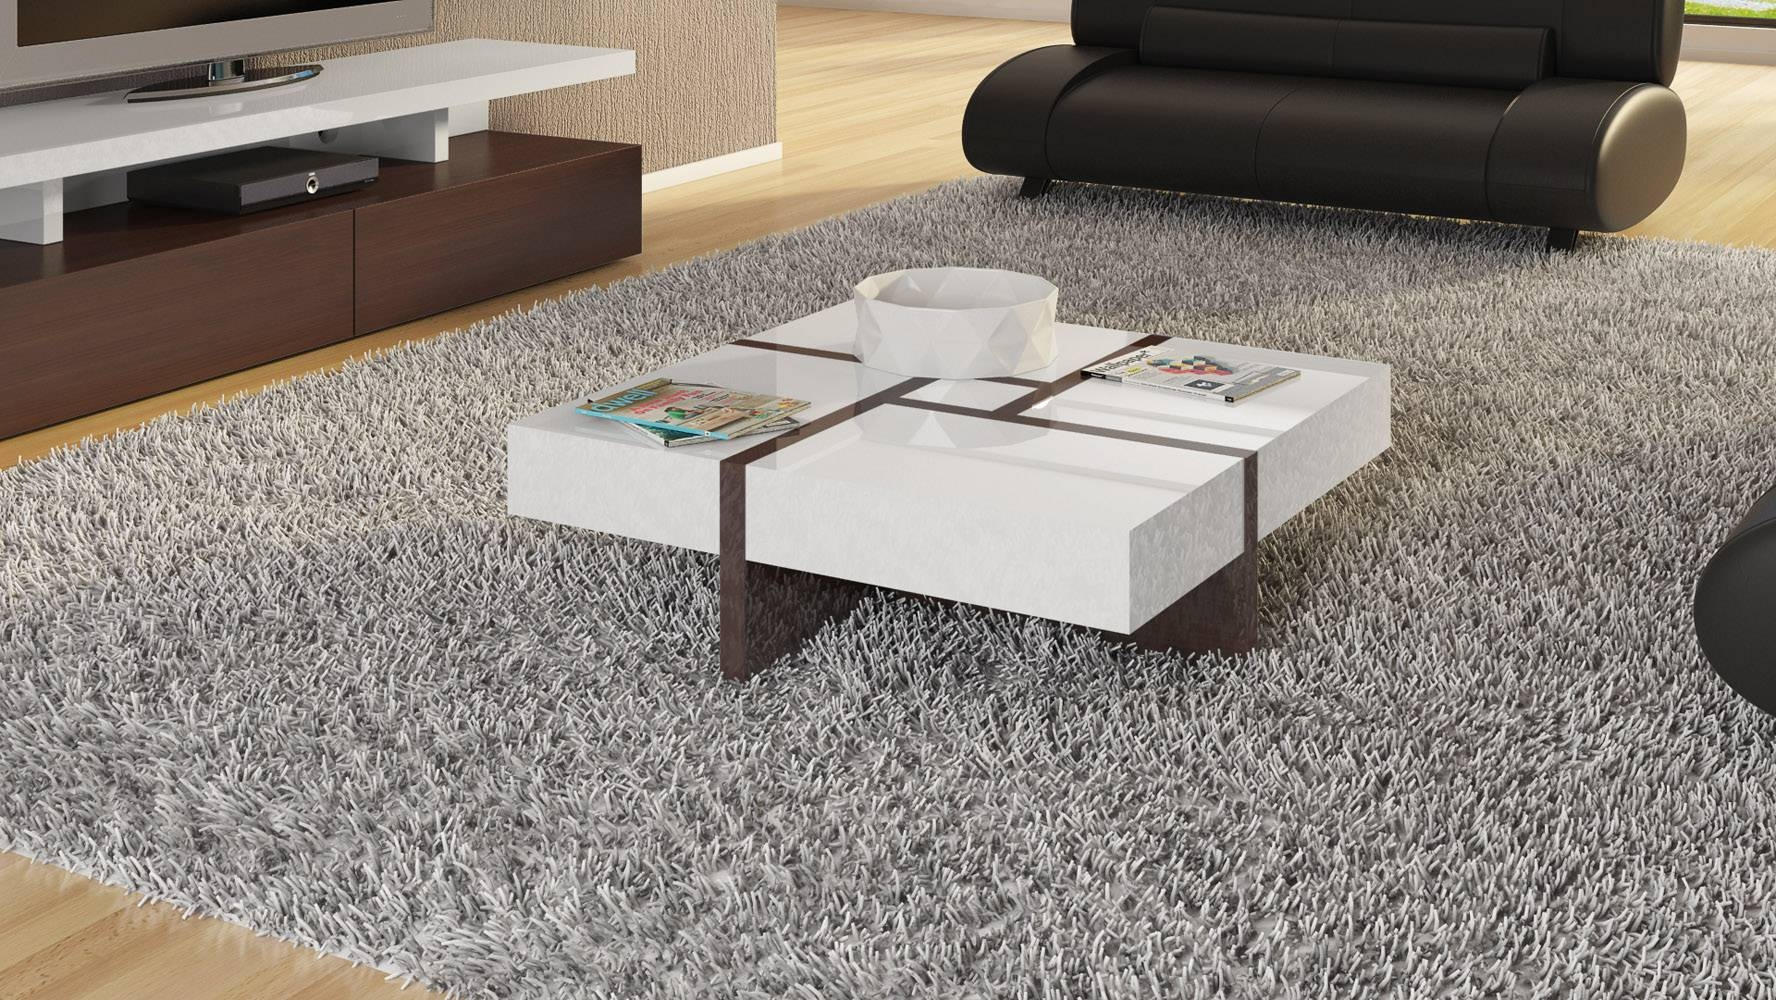 Mcintosh High Gloss Coffee Table With Storage - White Square regarding Gloss Coffee Tables (Image 21 of 30)